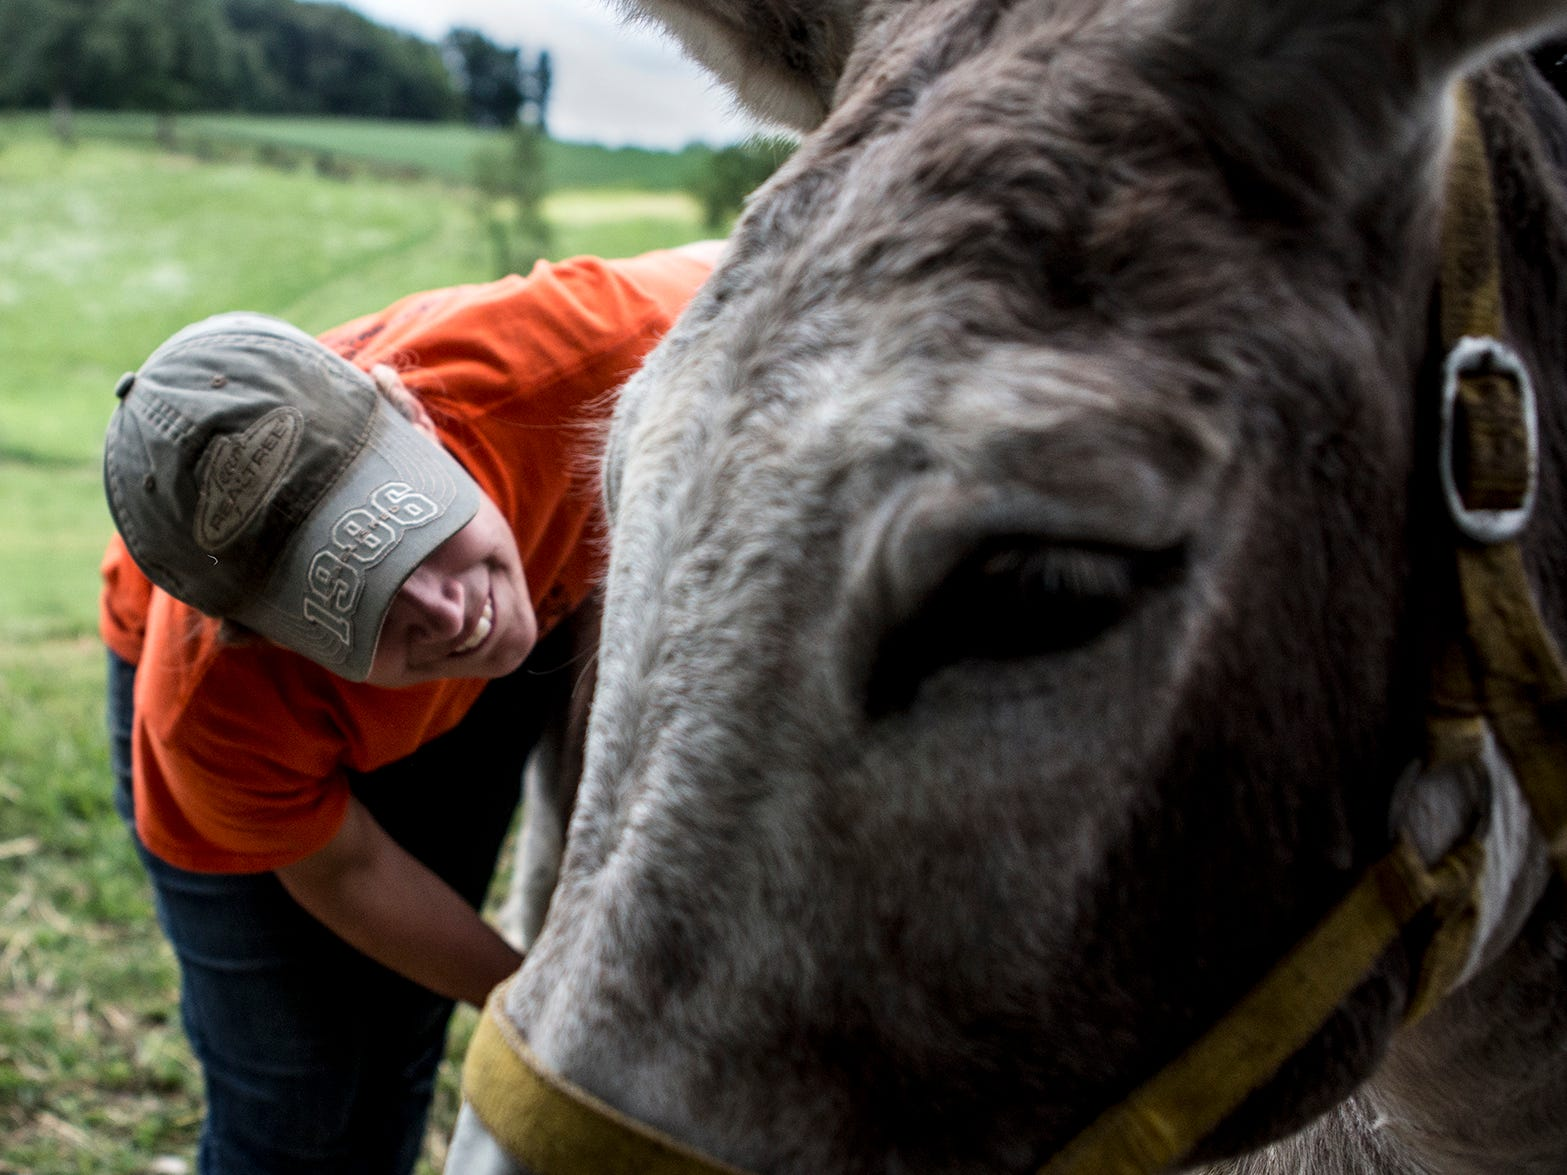 Mamie Hollenback greets the family donkey, Dee, while checking to see if her baby is close to being born. Dee ended up miscarrying the baby, which is one of the many lessons in the cycle of life her two sons learn by living on a farm.